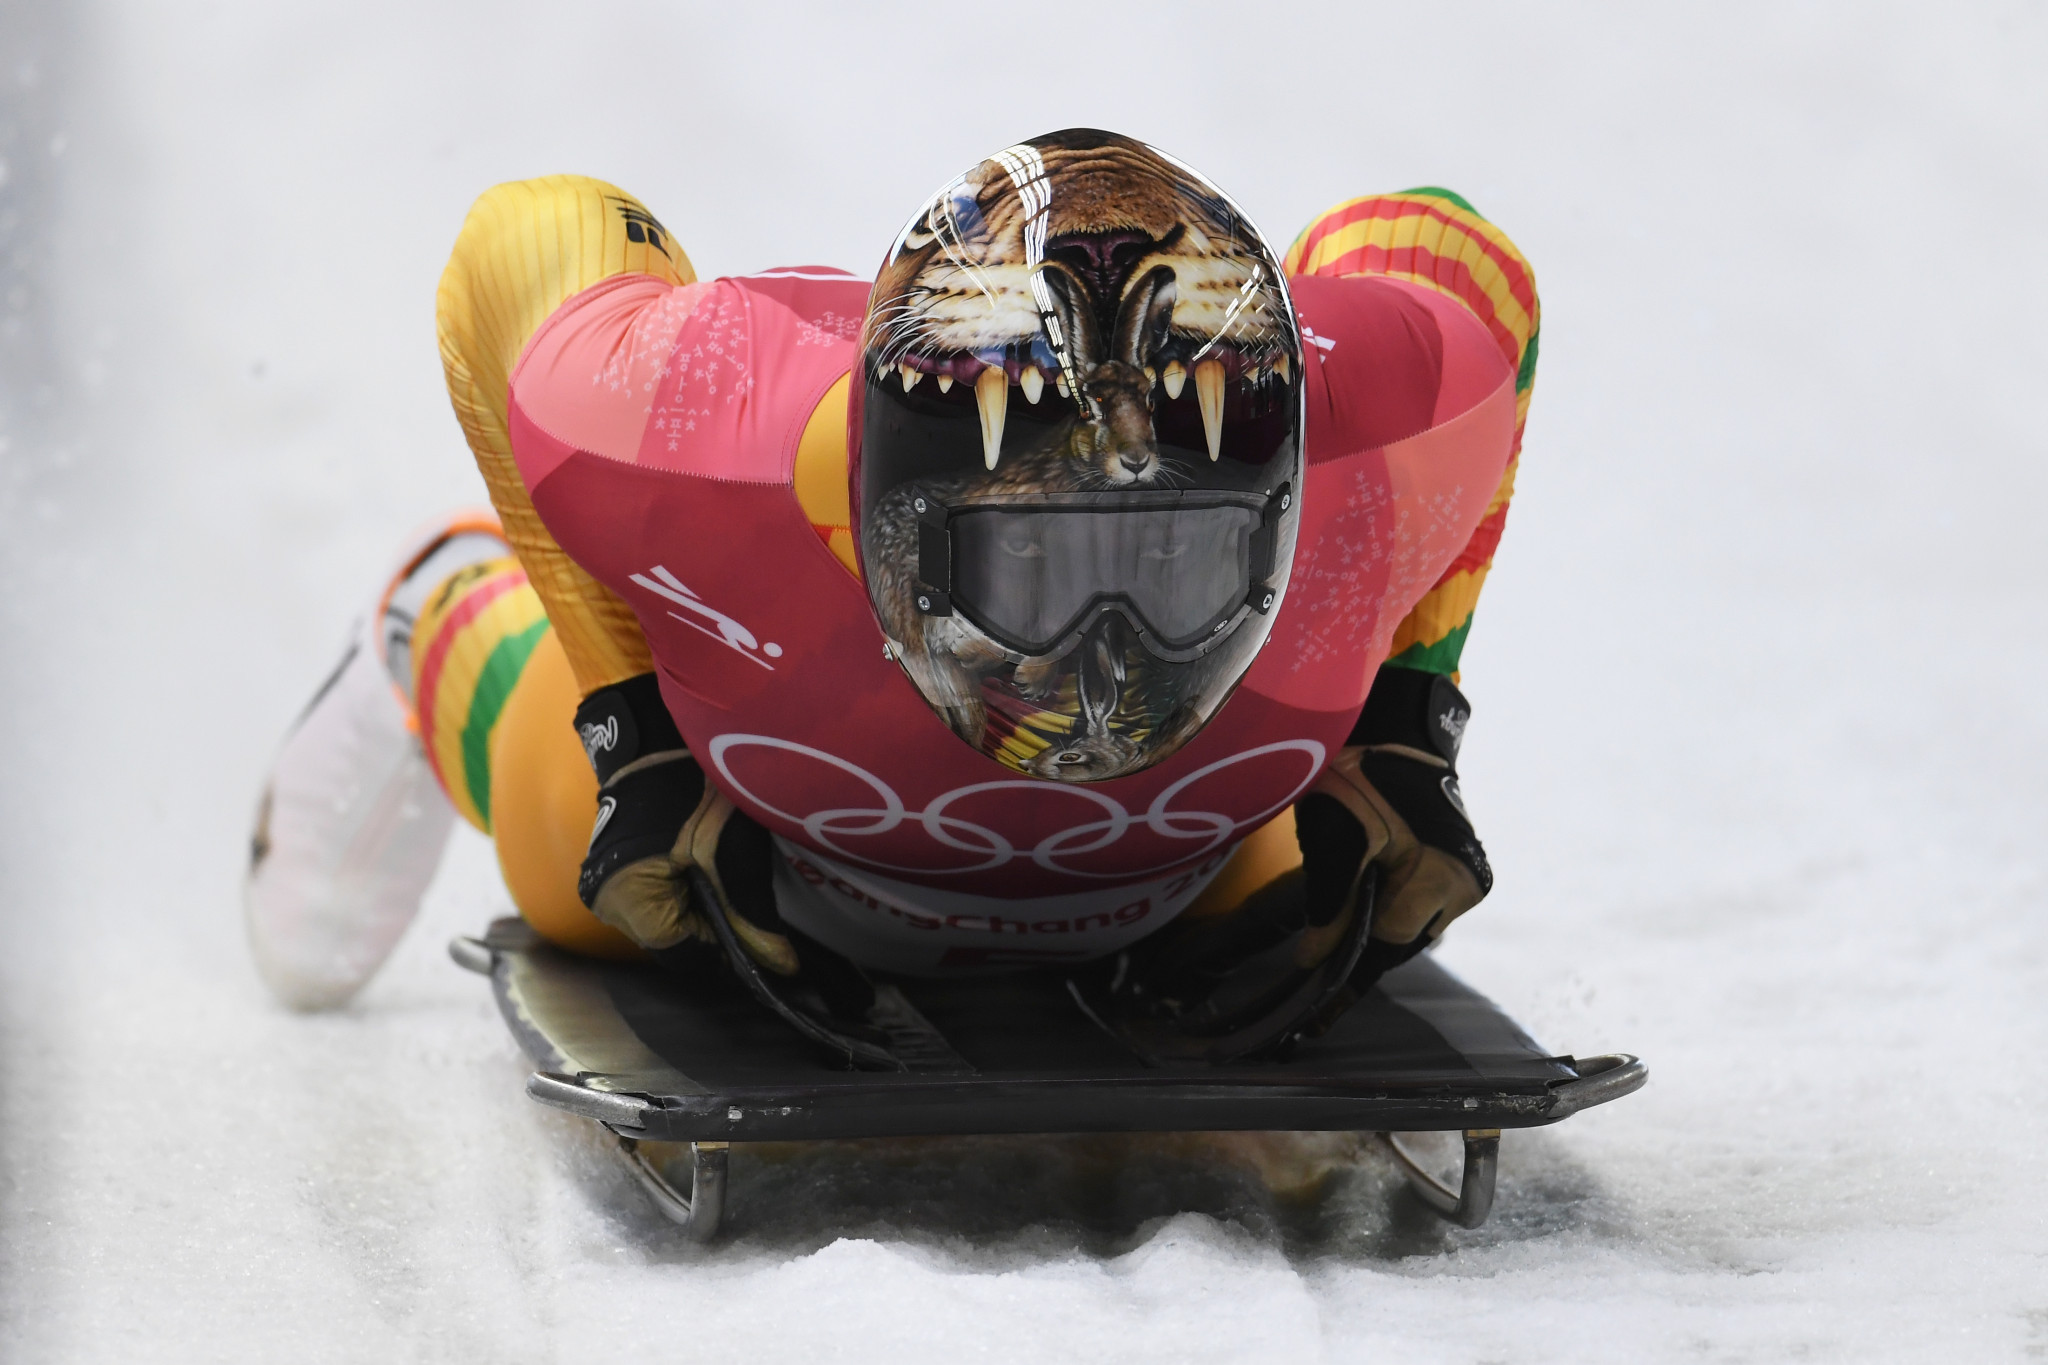 Akwasi Frimpong became Ghana's first Winter Olympian in skeleton at Pyeongchang 2018 ©Getty Images